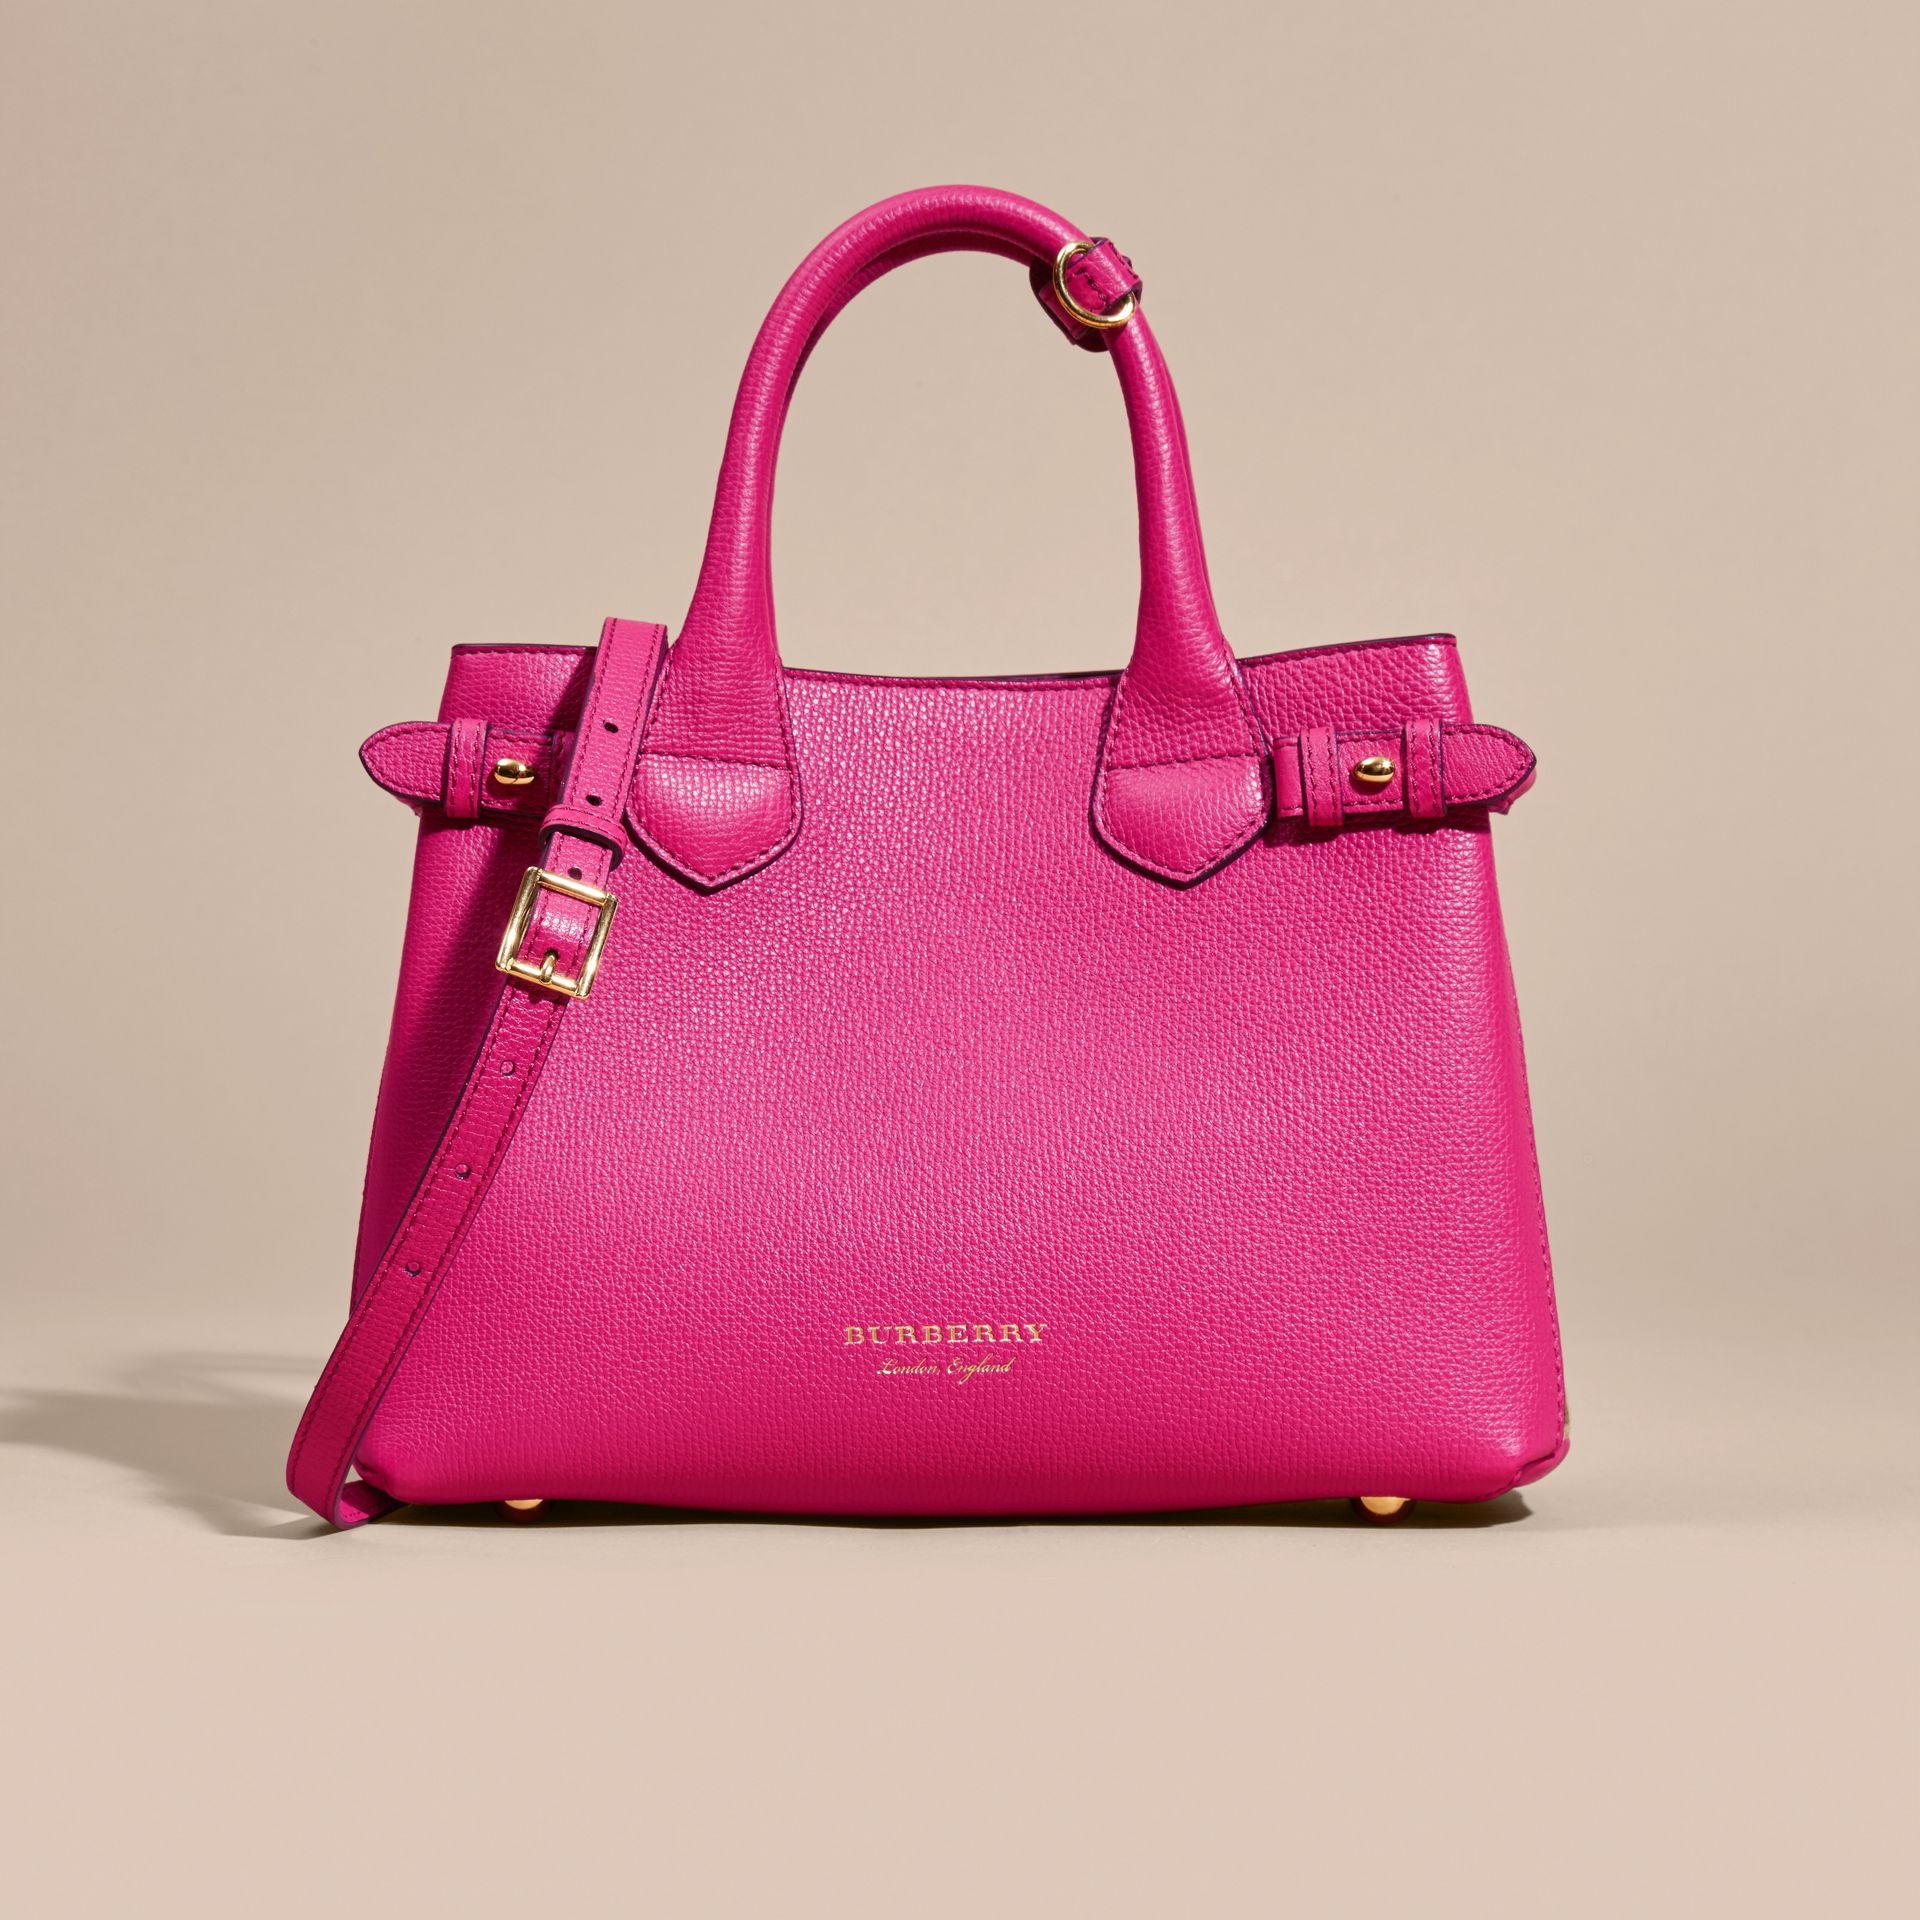 Fuchsia vif Petit sac The Banner en cuir et coton House check Fuchsia Vif - photo de la galerie 7